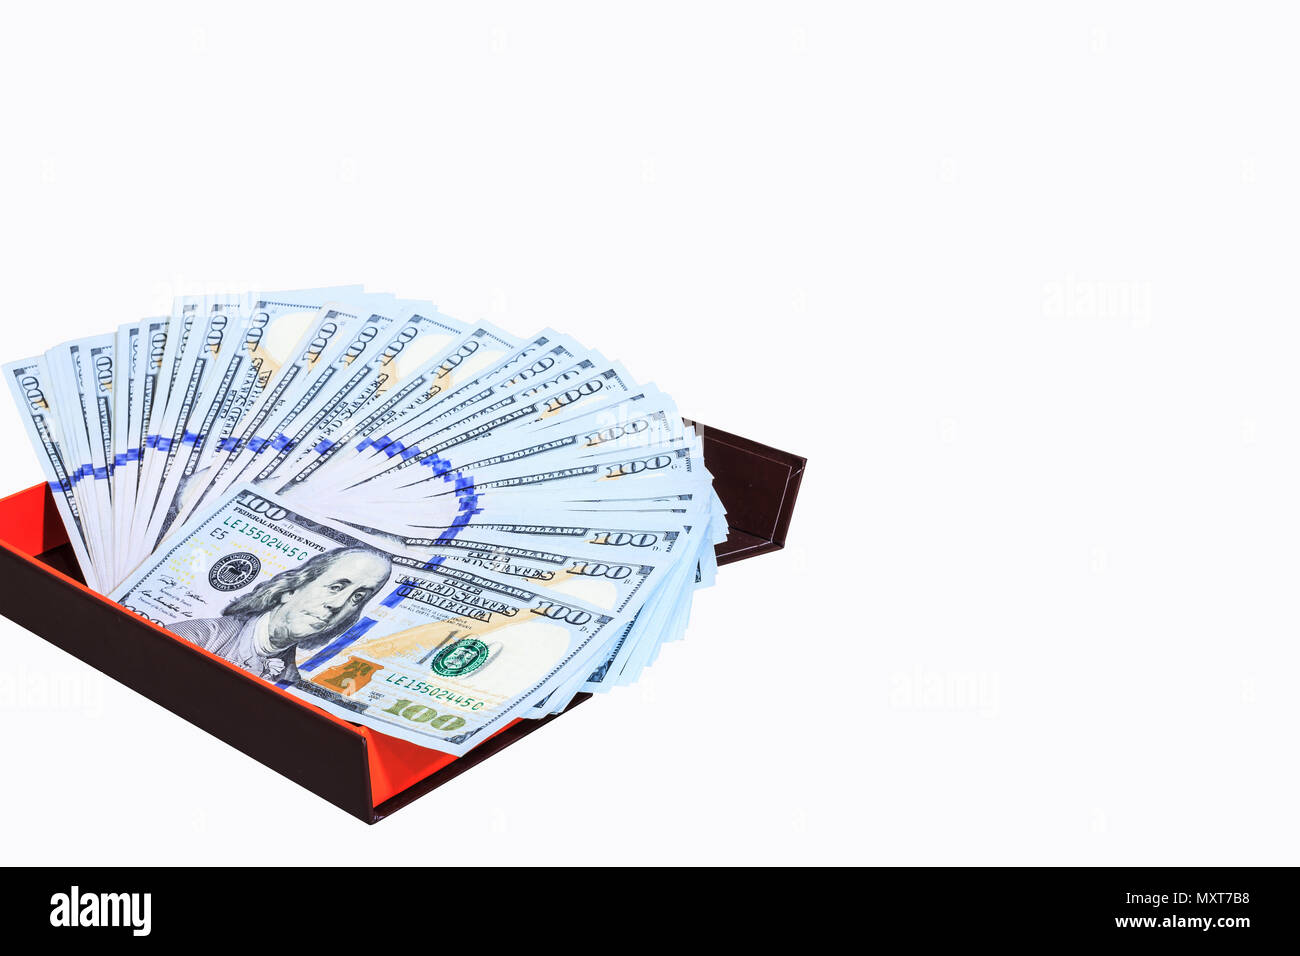 Fan of One Hundred Dollars notes in money gift box, isolated on white background with clipping path - Stock Image